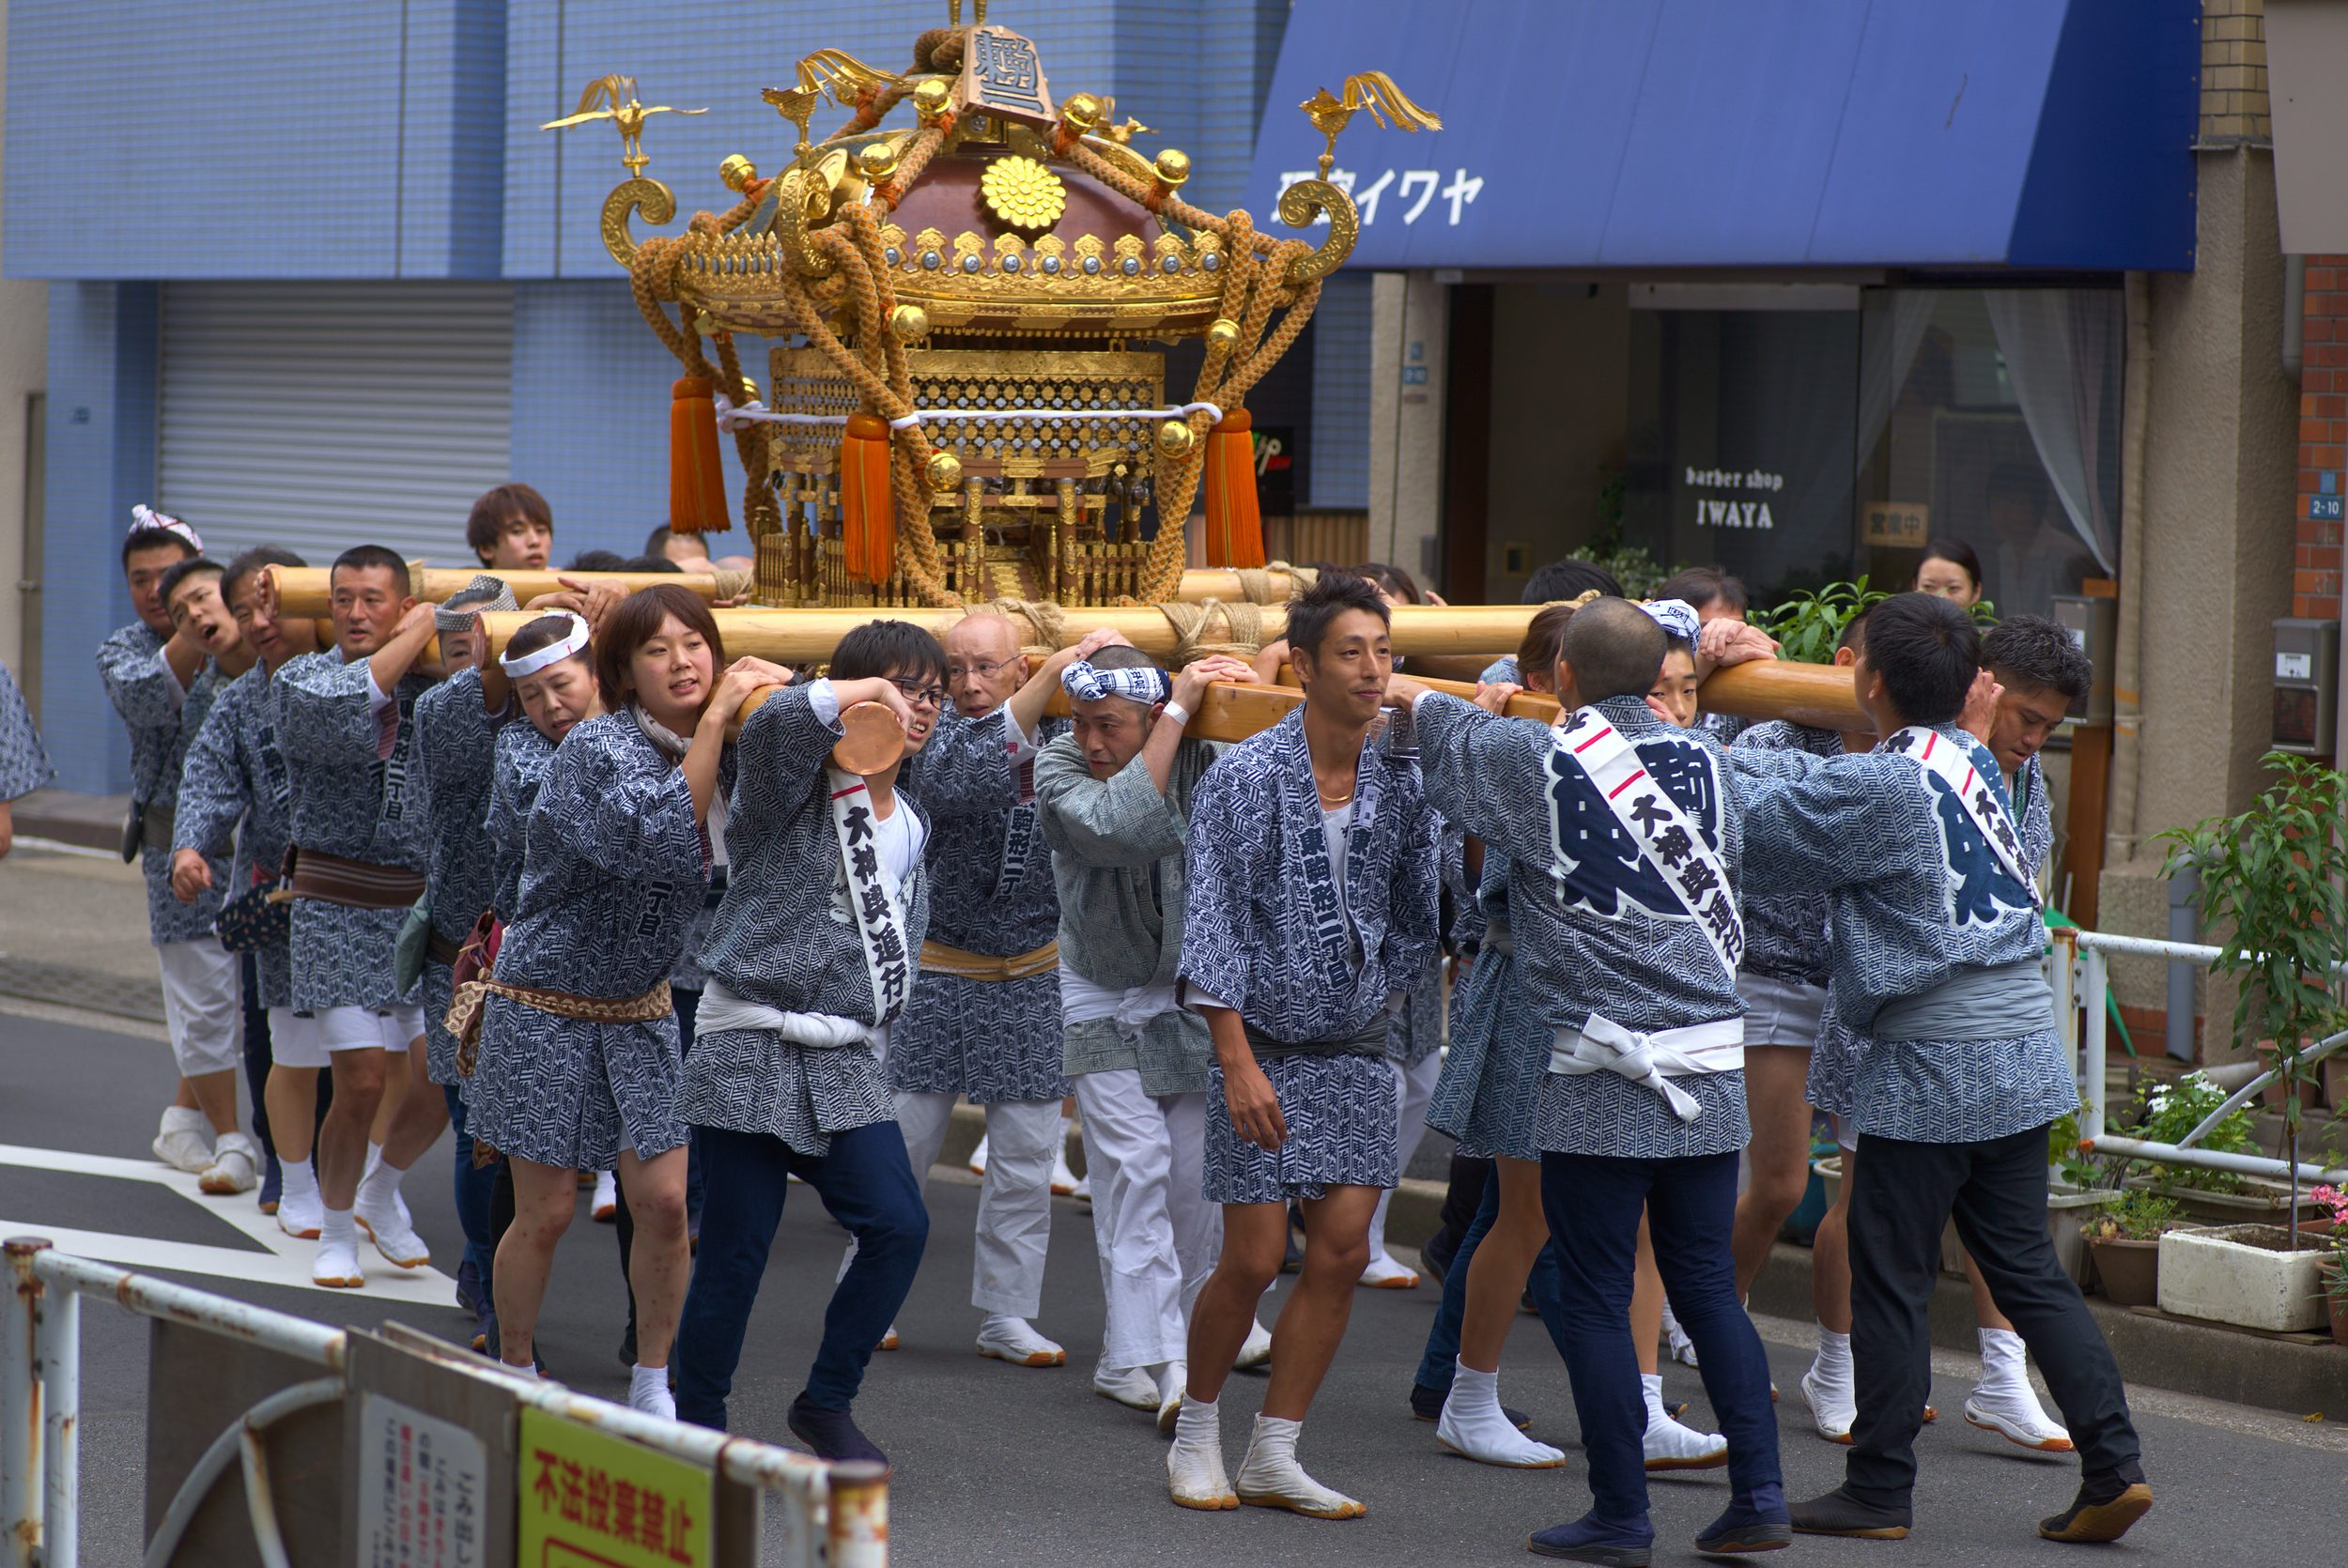 25 young people corrying a mikoshi and chanting